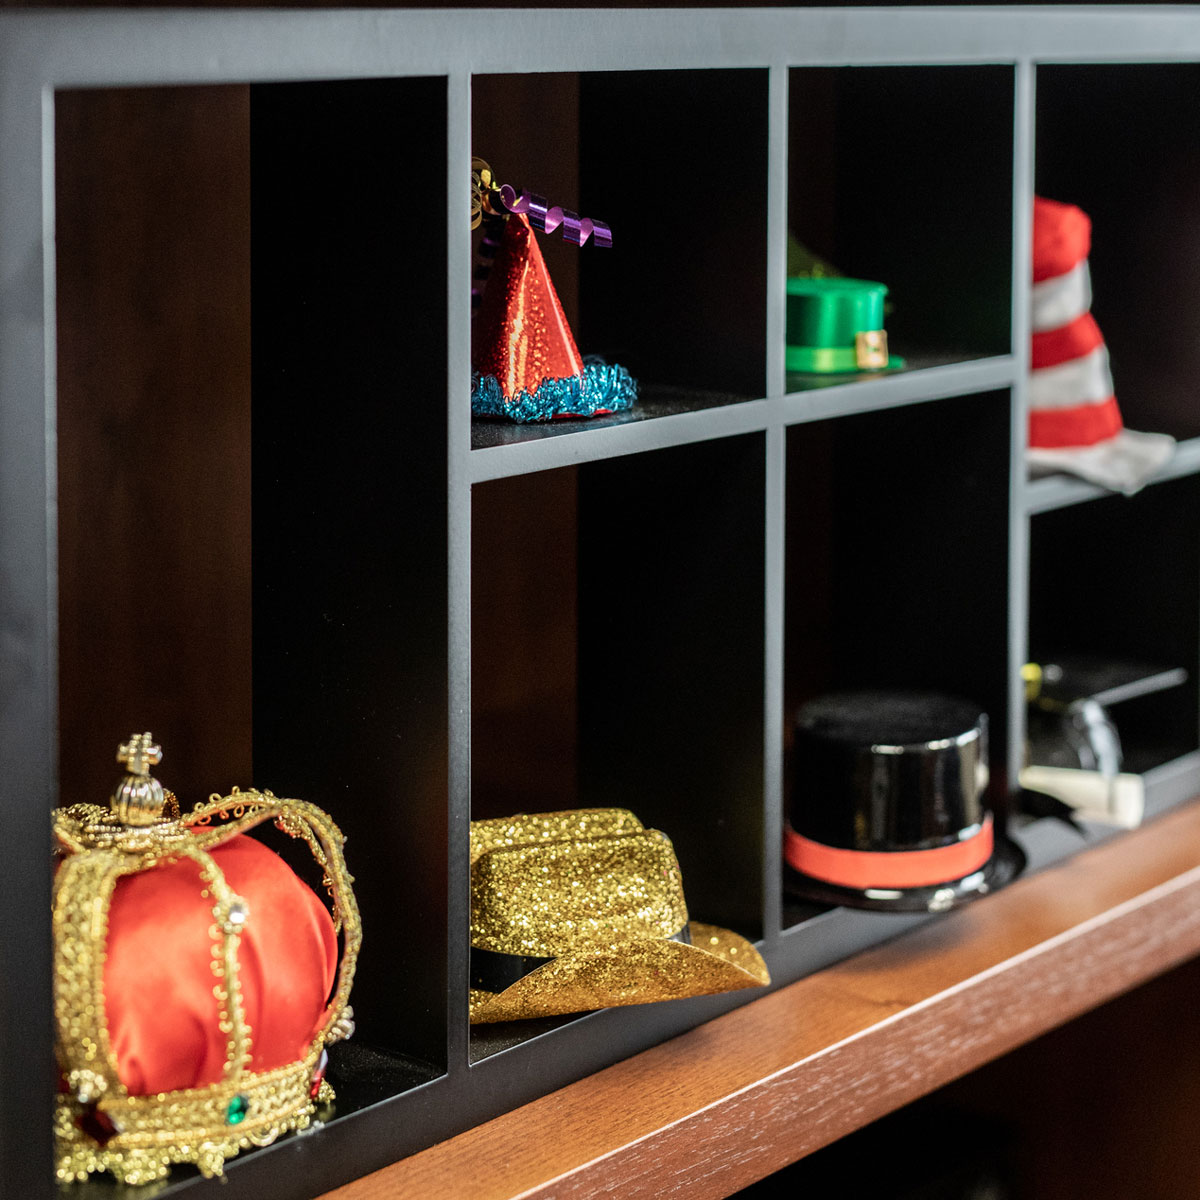 a black horizontal cube shelf with hats of different styles featuring a royal crown, cowboy hat and top hat